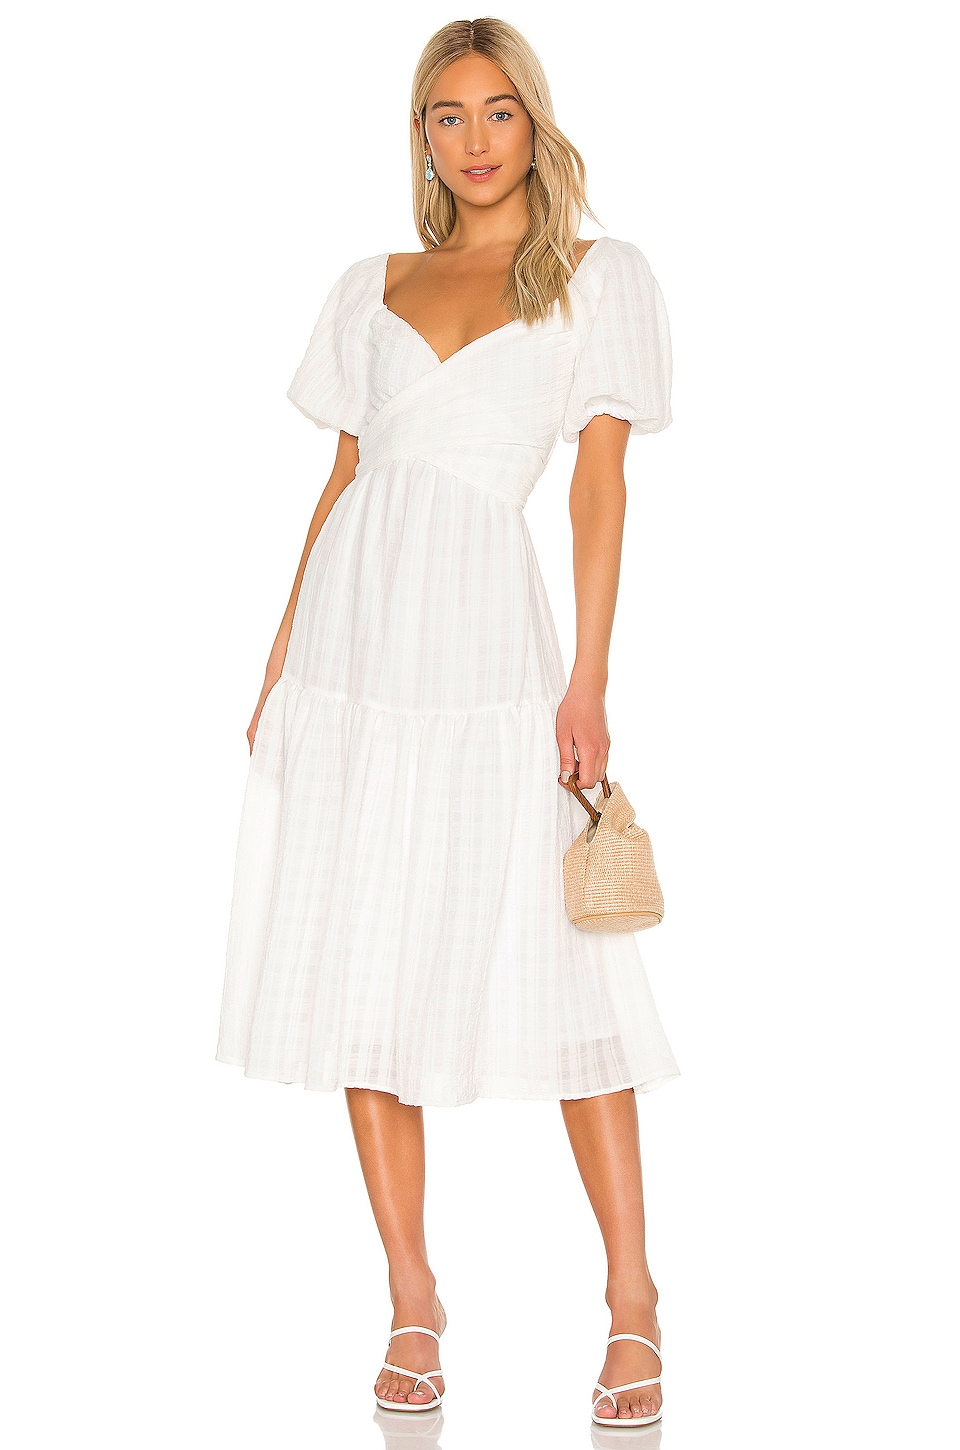 Sonnet Dress             ASTR the Label                                                                                                       CA$ 199.96 15